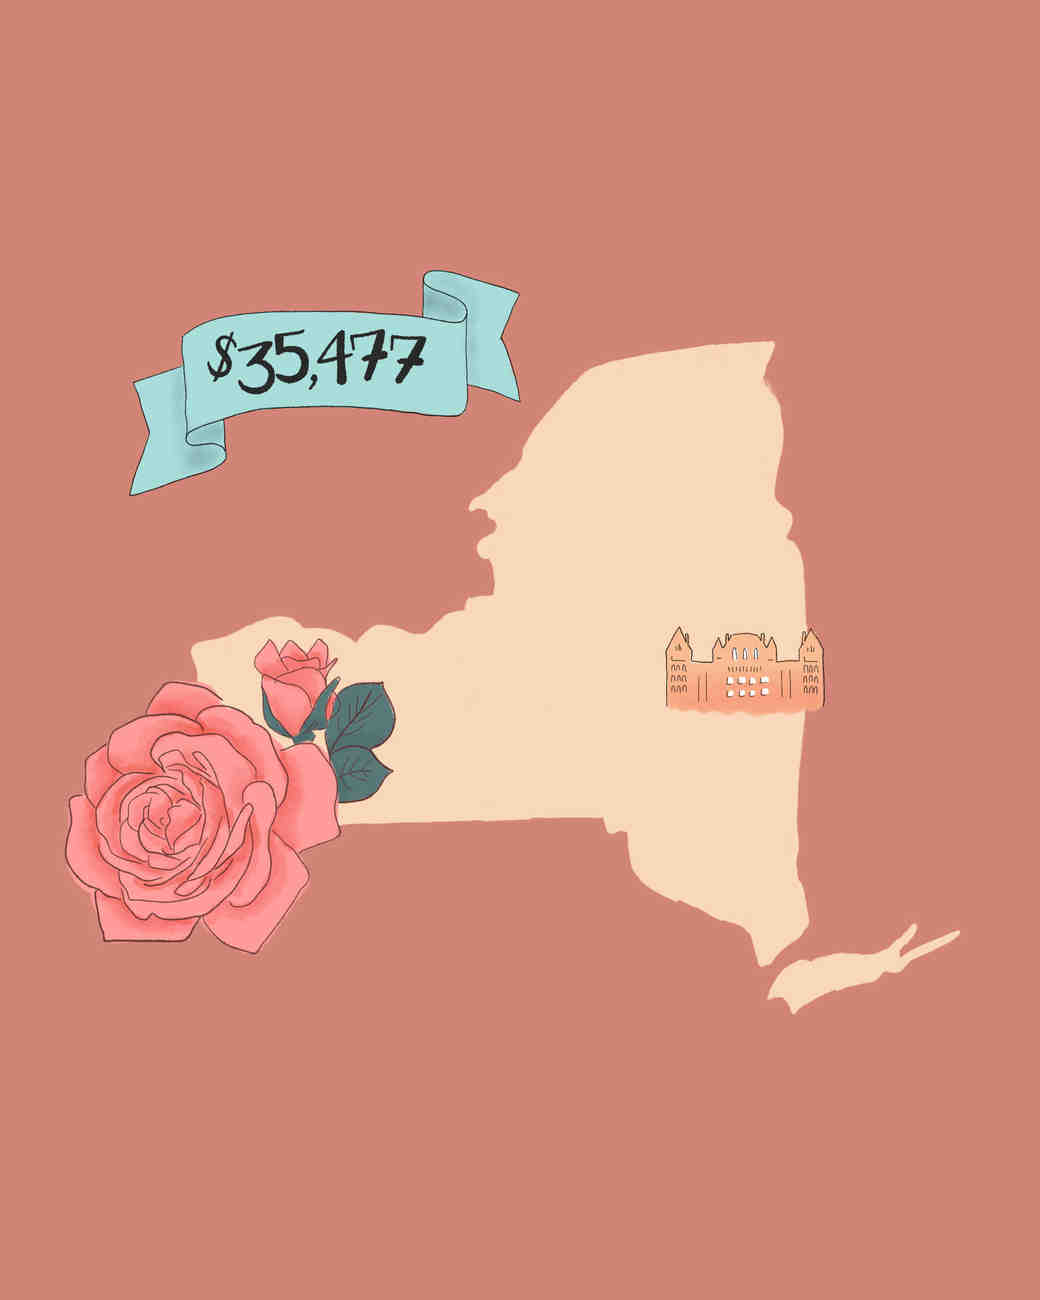 state wedding costs illustration new york